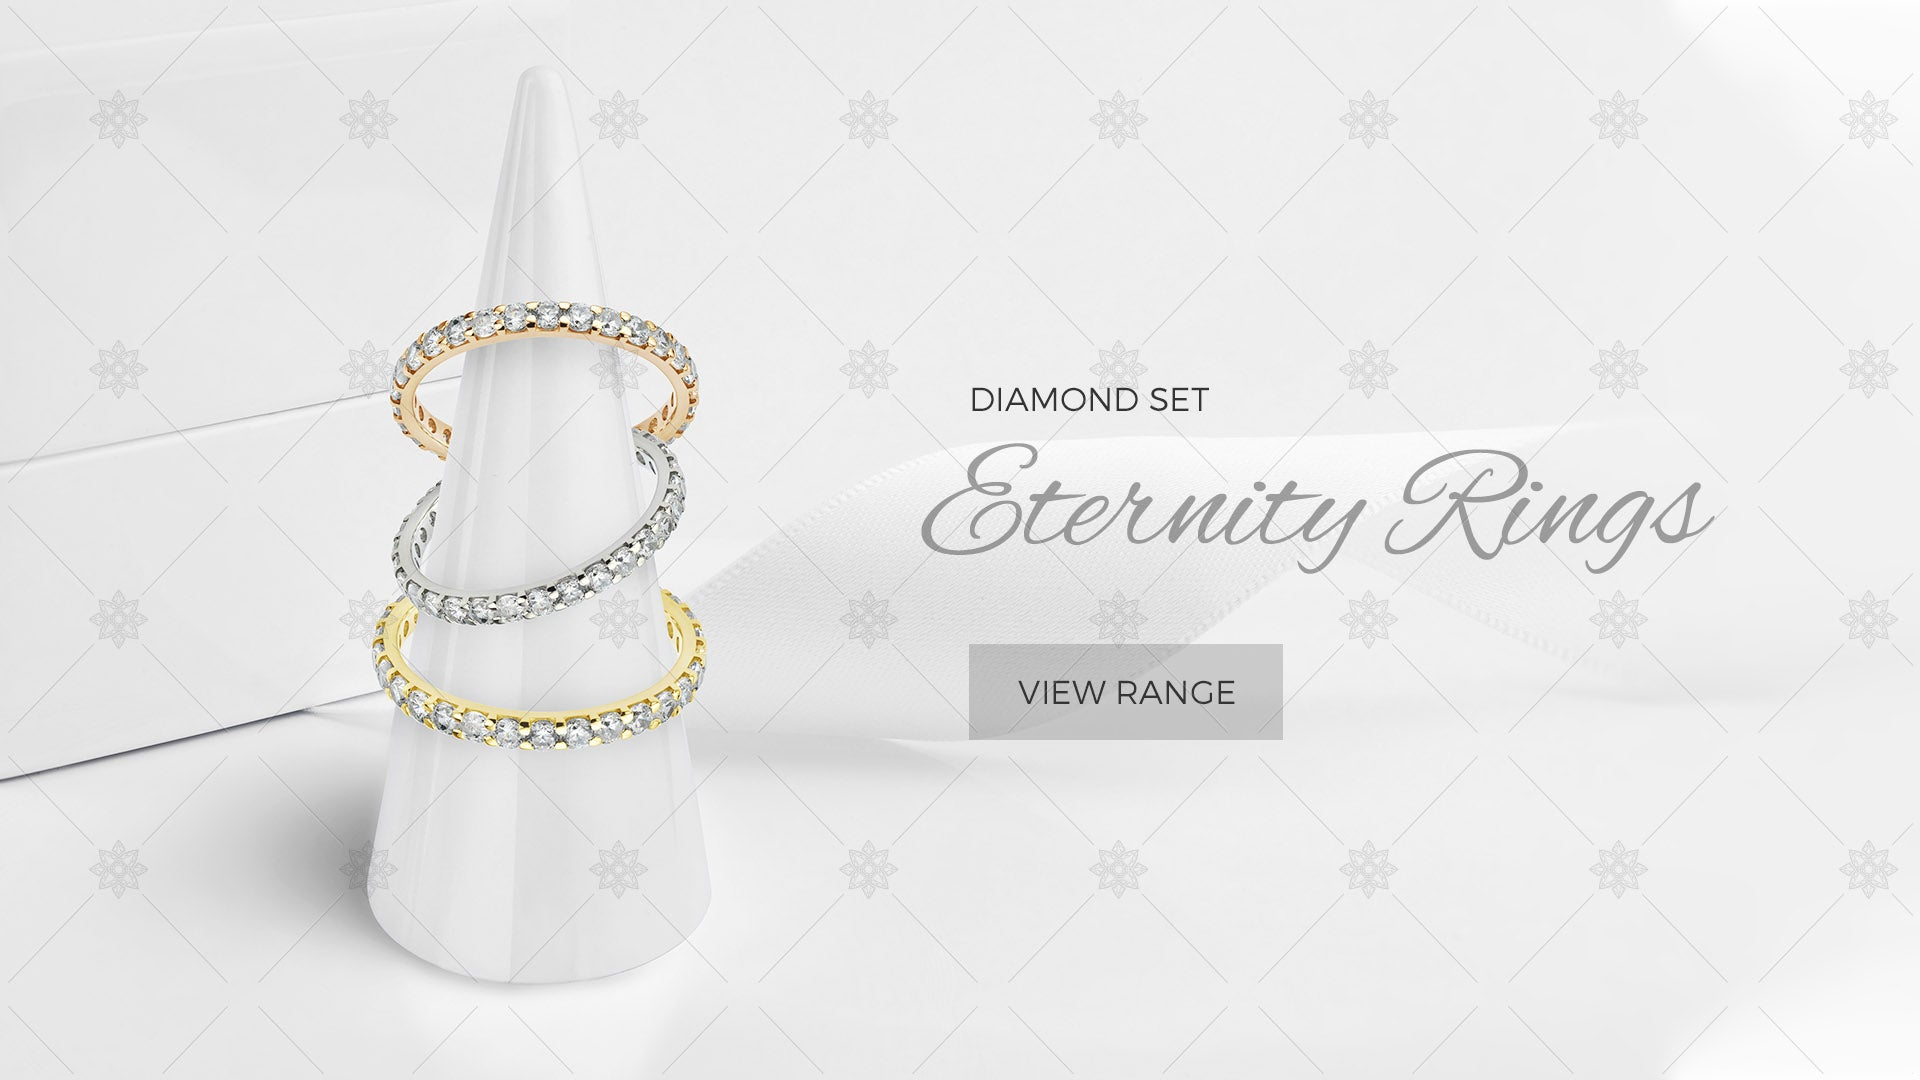 Eternity Rings website banner design